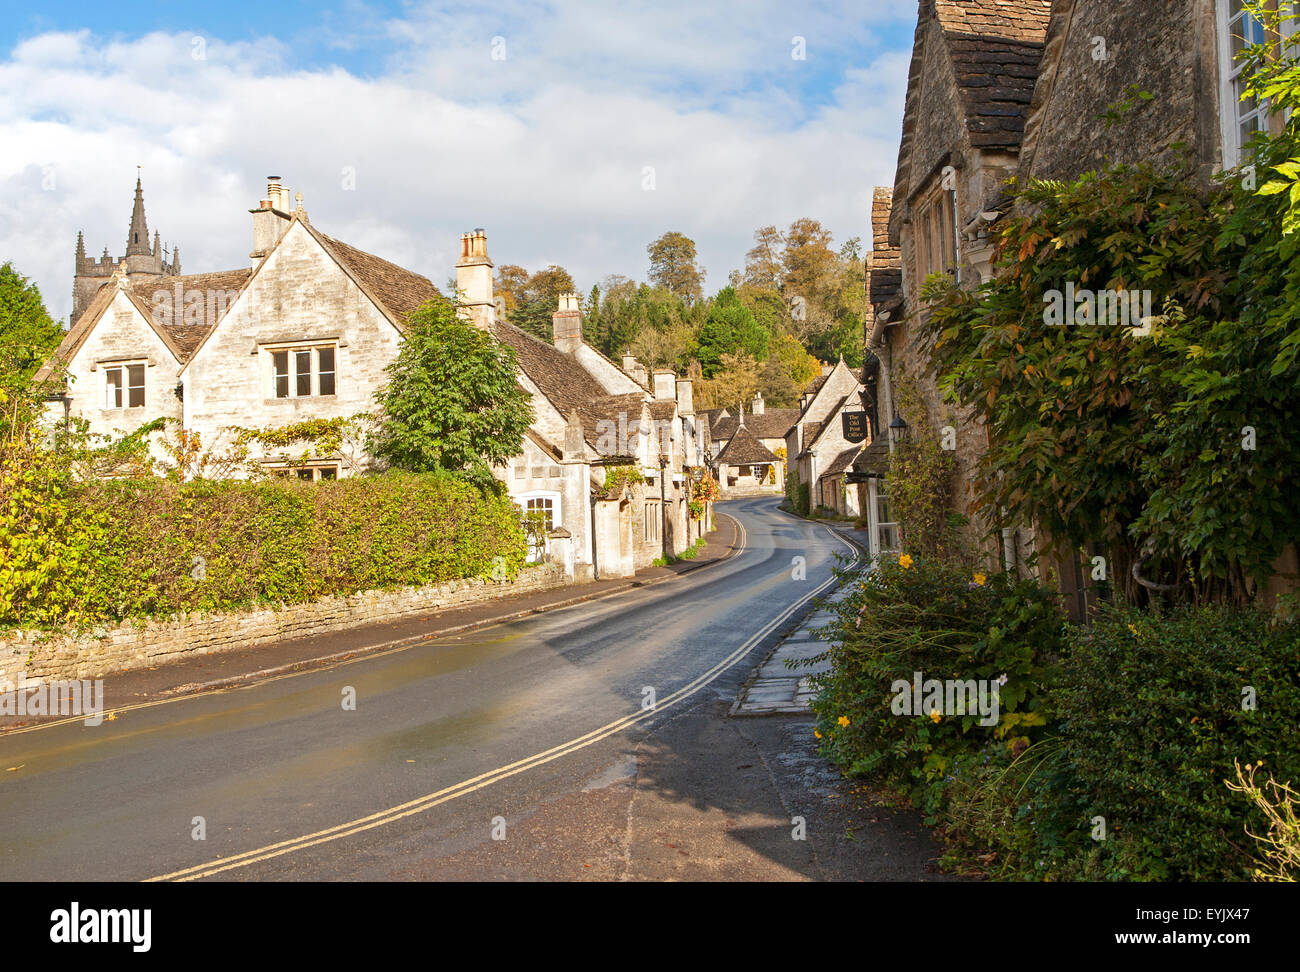 Attractive stone cottages in Castle Combe, Wiltshire, England, UK claimed to be England's prettiest village - Stock Image